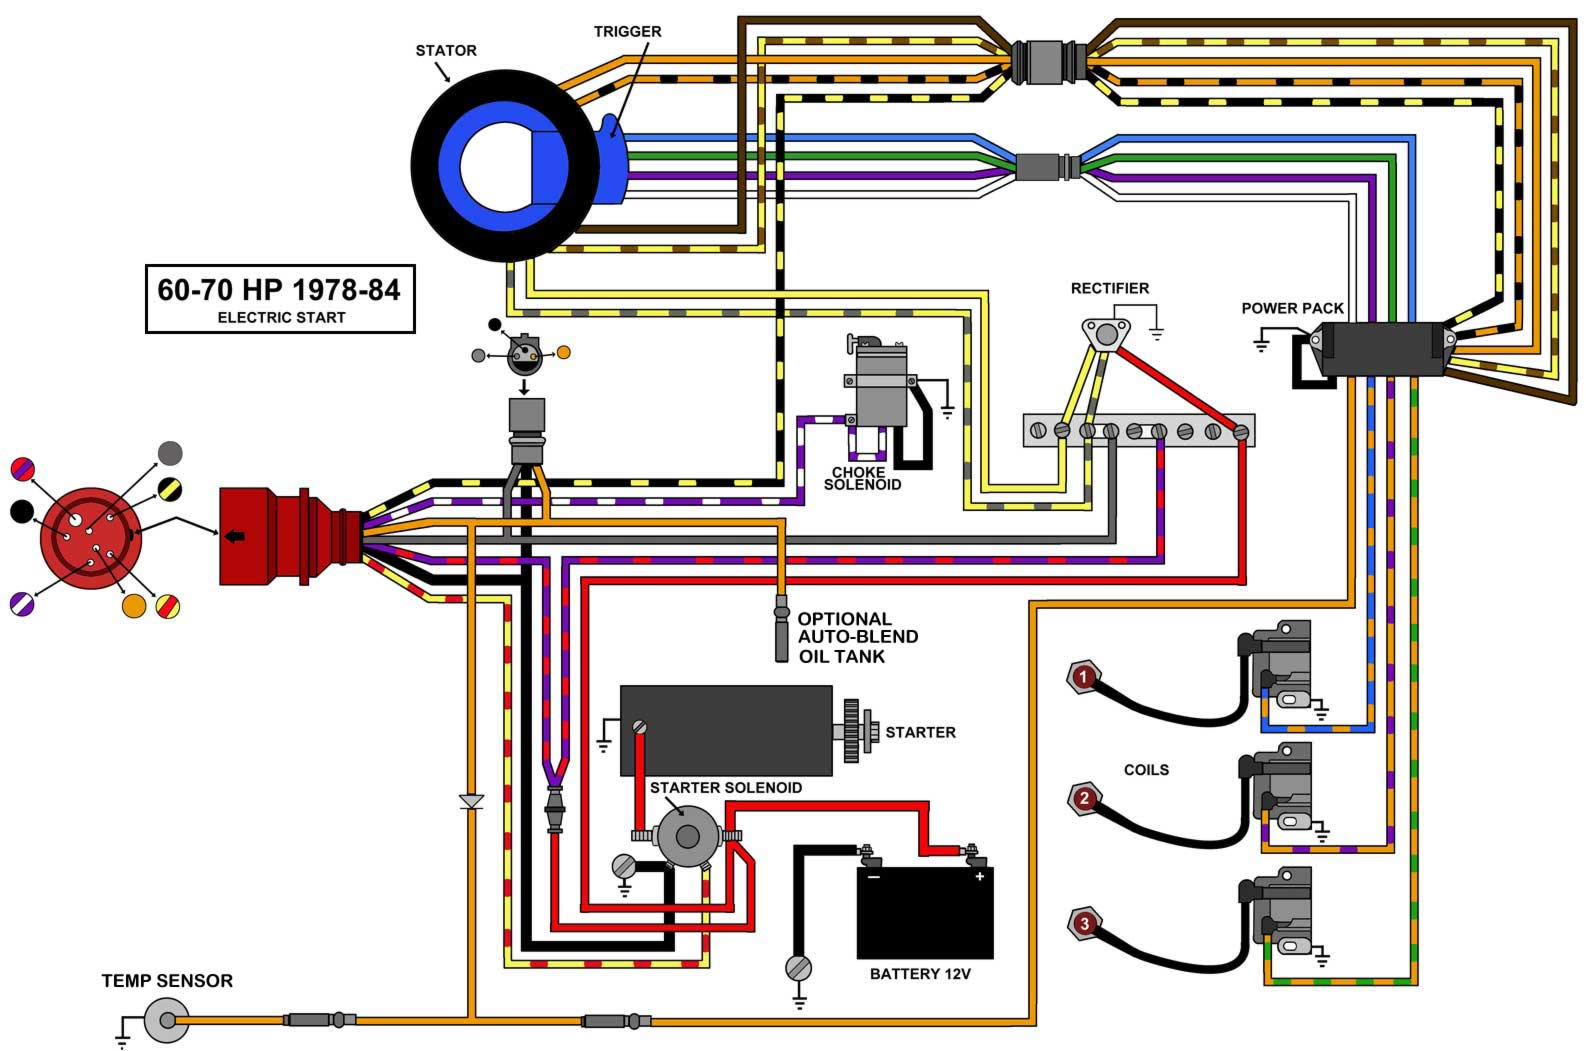 Us Marine Tach Wiring Diagram 29 Images Faria Tachometer 78 84 3 Cyl El From Johnson Controls Page 1 Iboats Boating Forums 2008 Yamaha Outboard